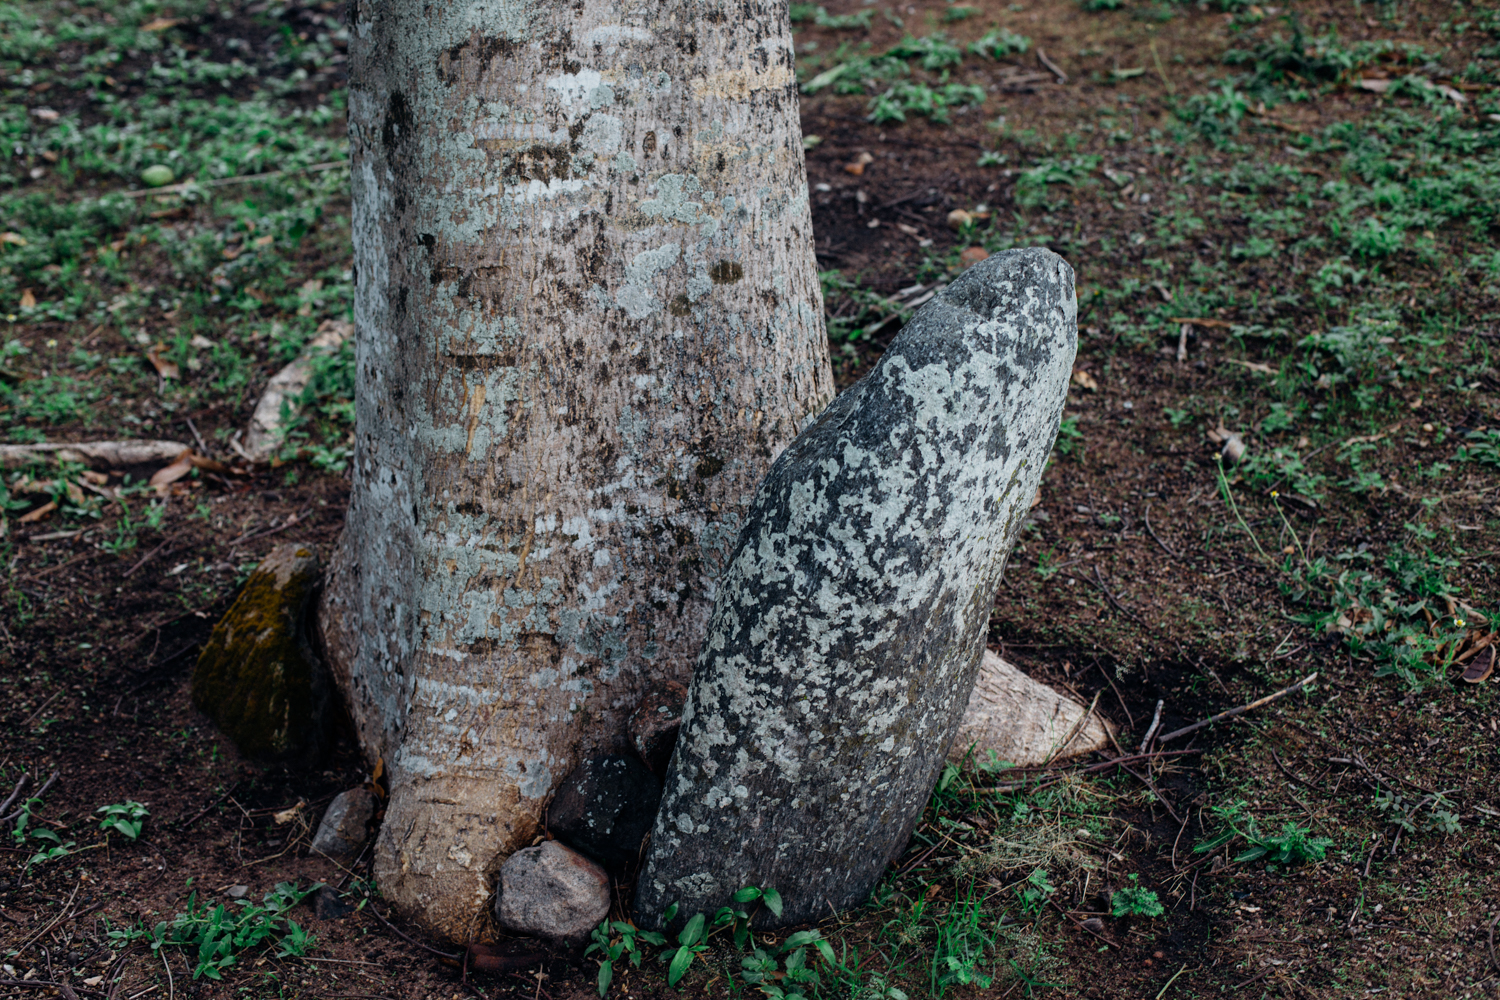 Ikom Stone Monolith being pushed by the stem of a tree